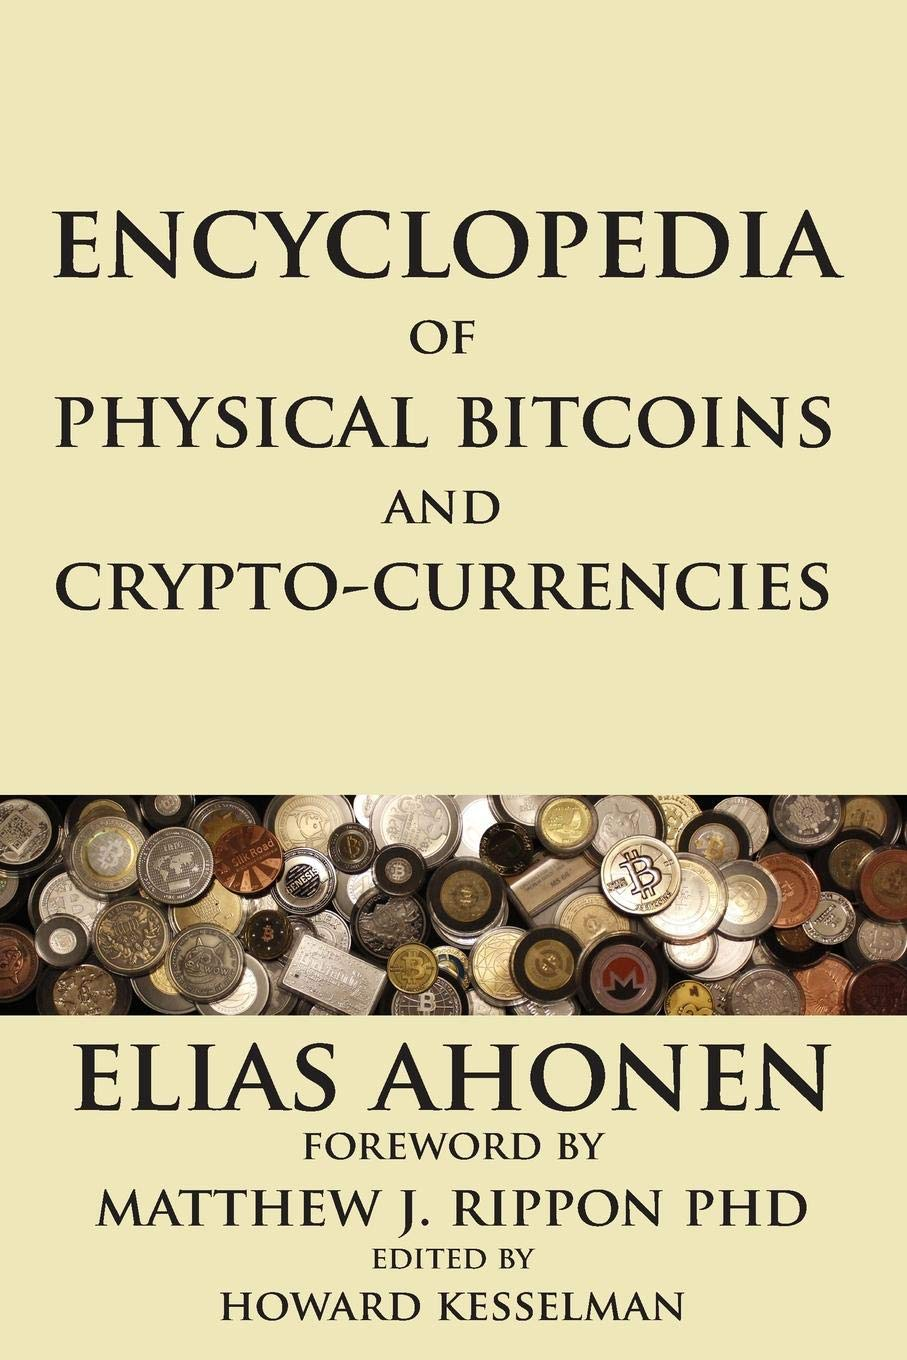 Encyclopedia of Physical Bitcoins and